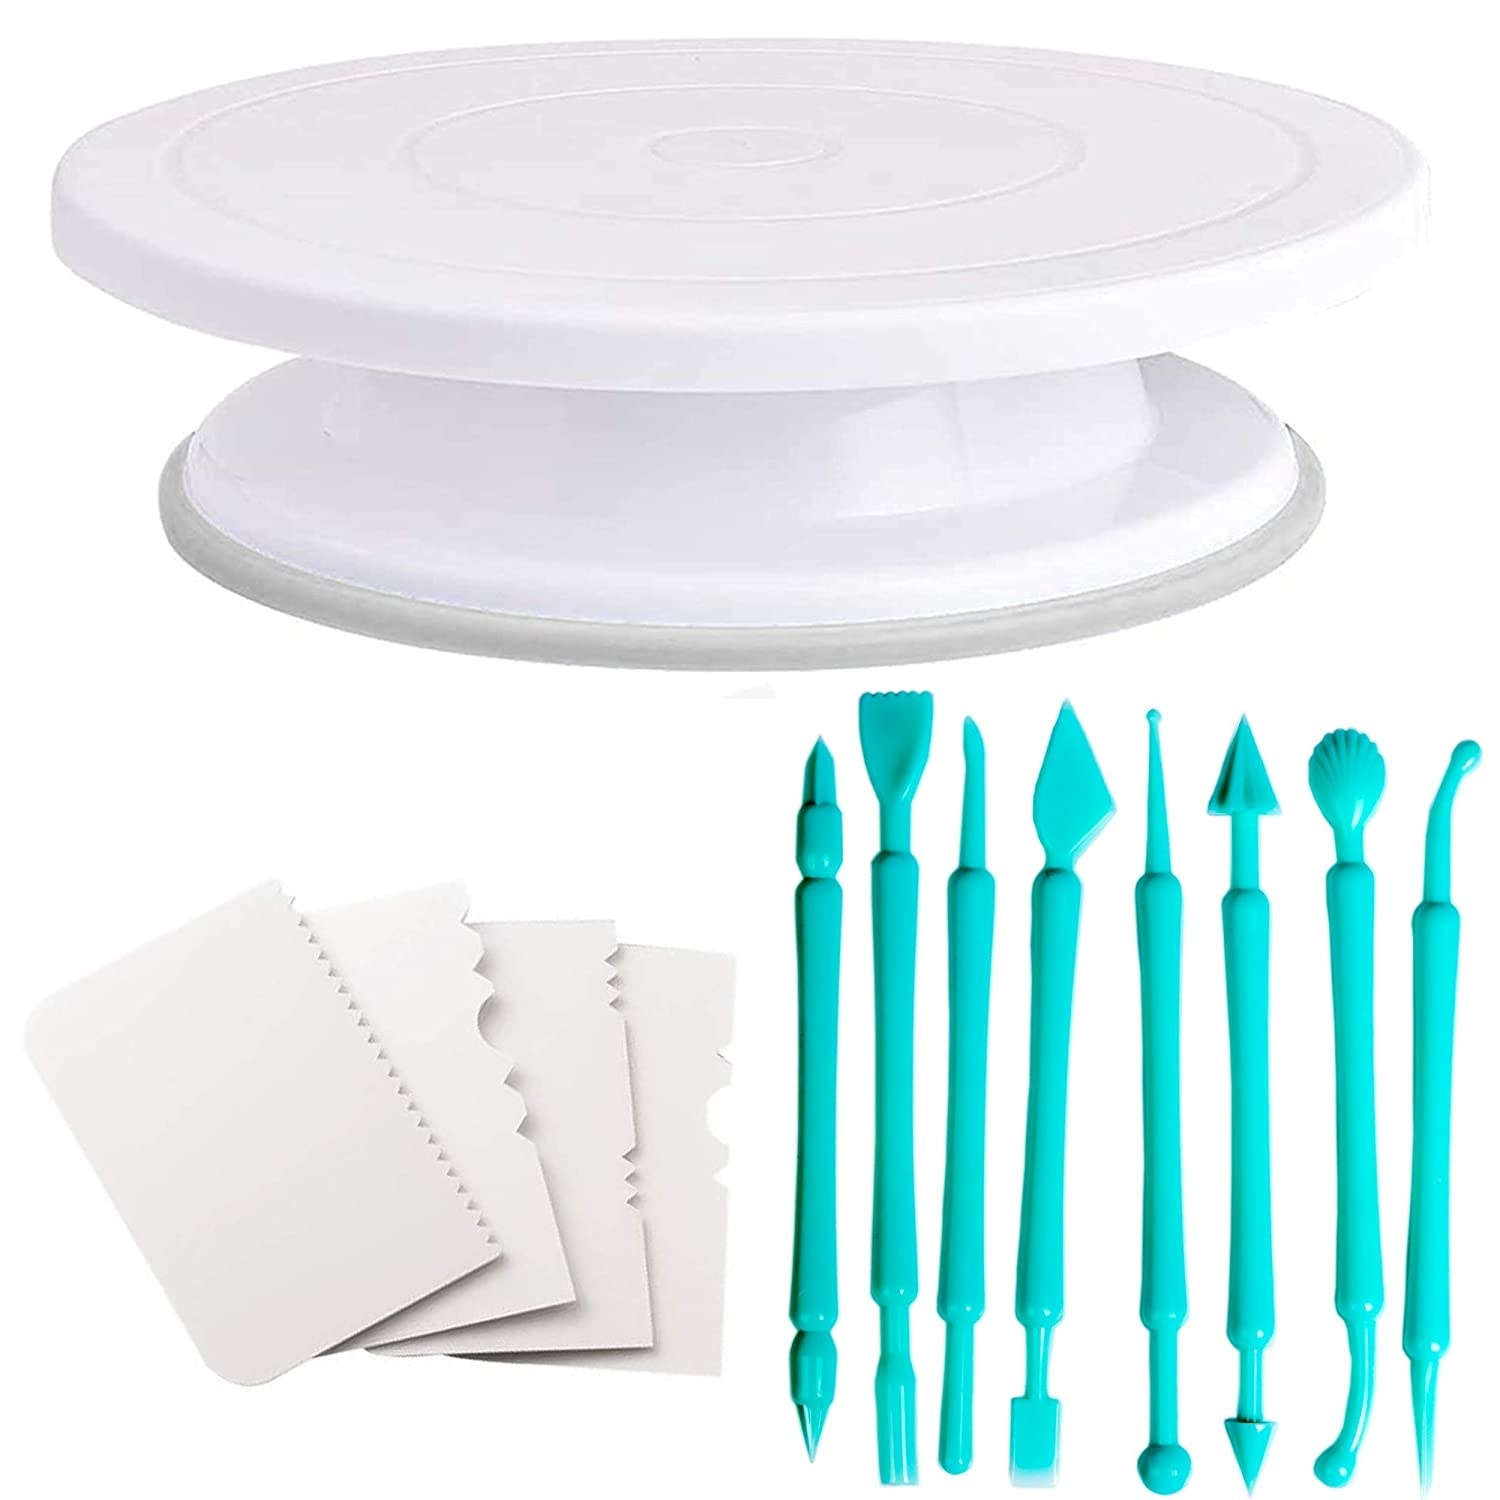 A white cake rotating stand, a set of four cake side scrapers with different edge designs and a set of blue fondant tools